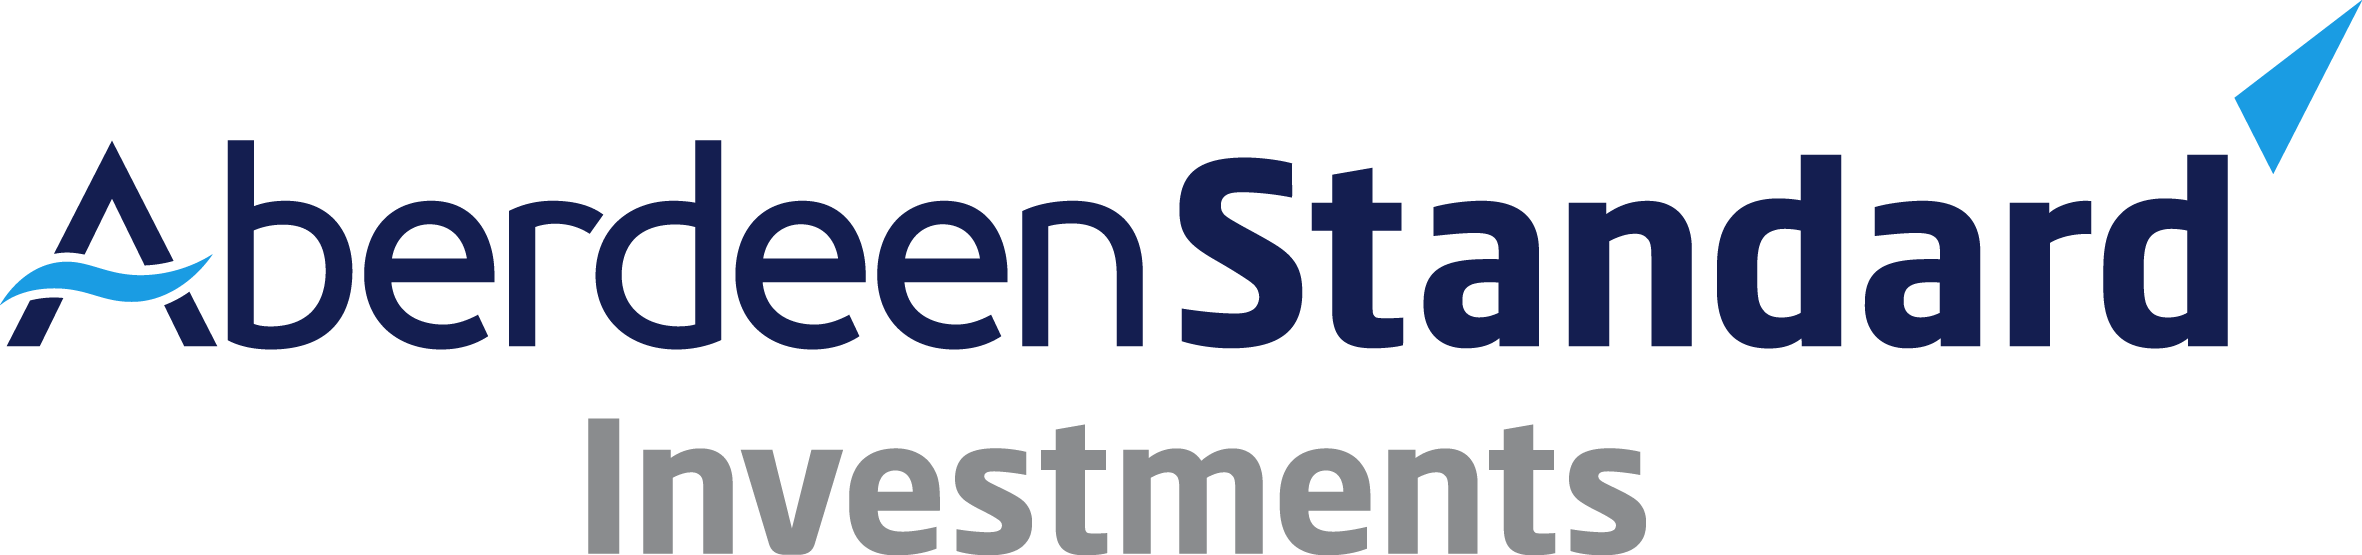 Aberdeen New Dawn Investment Trust Plc Logo